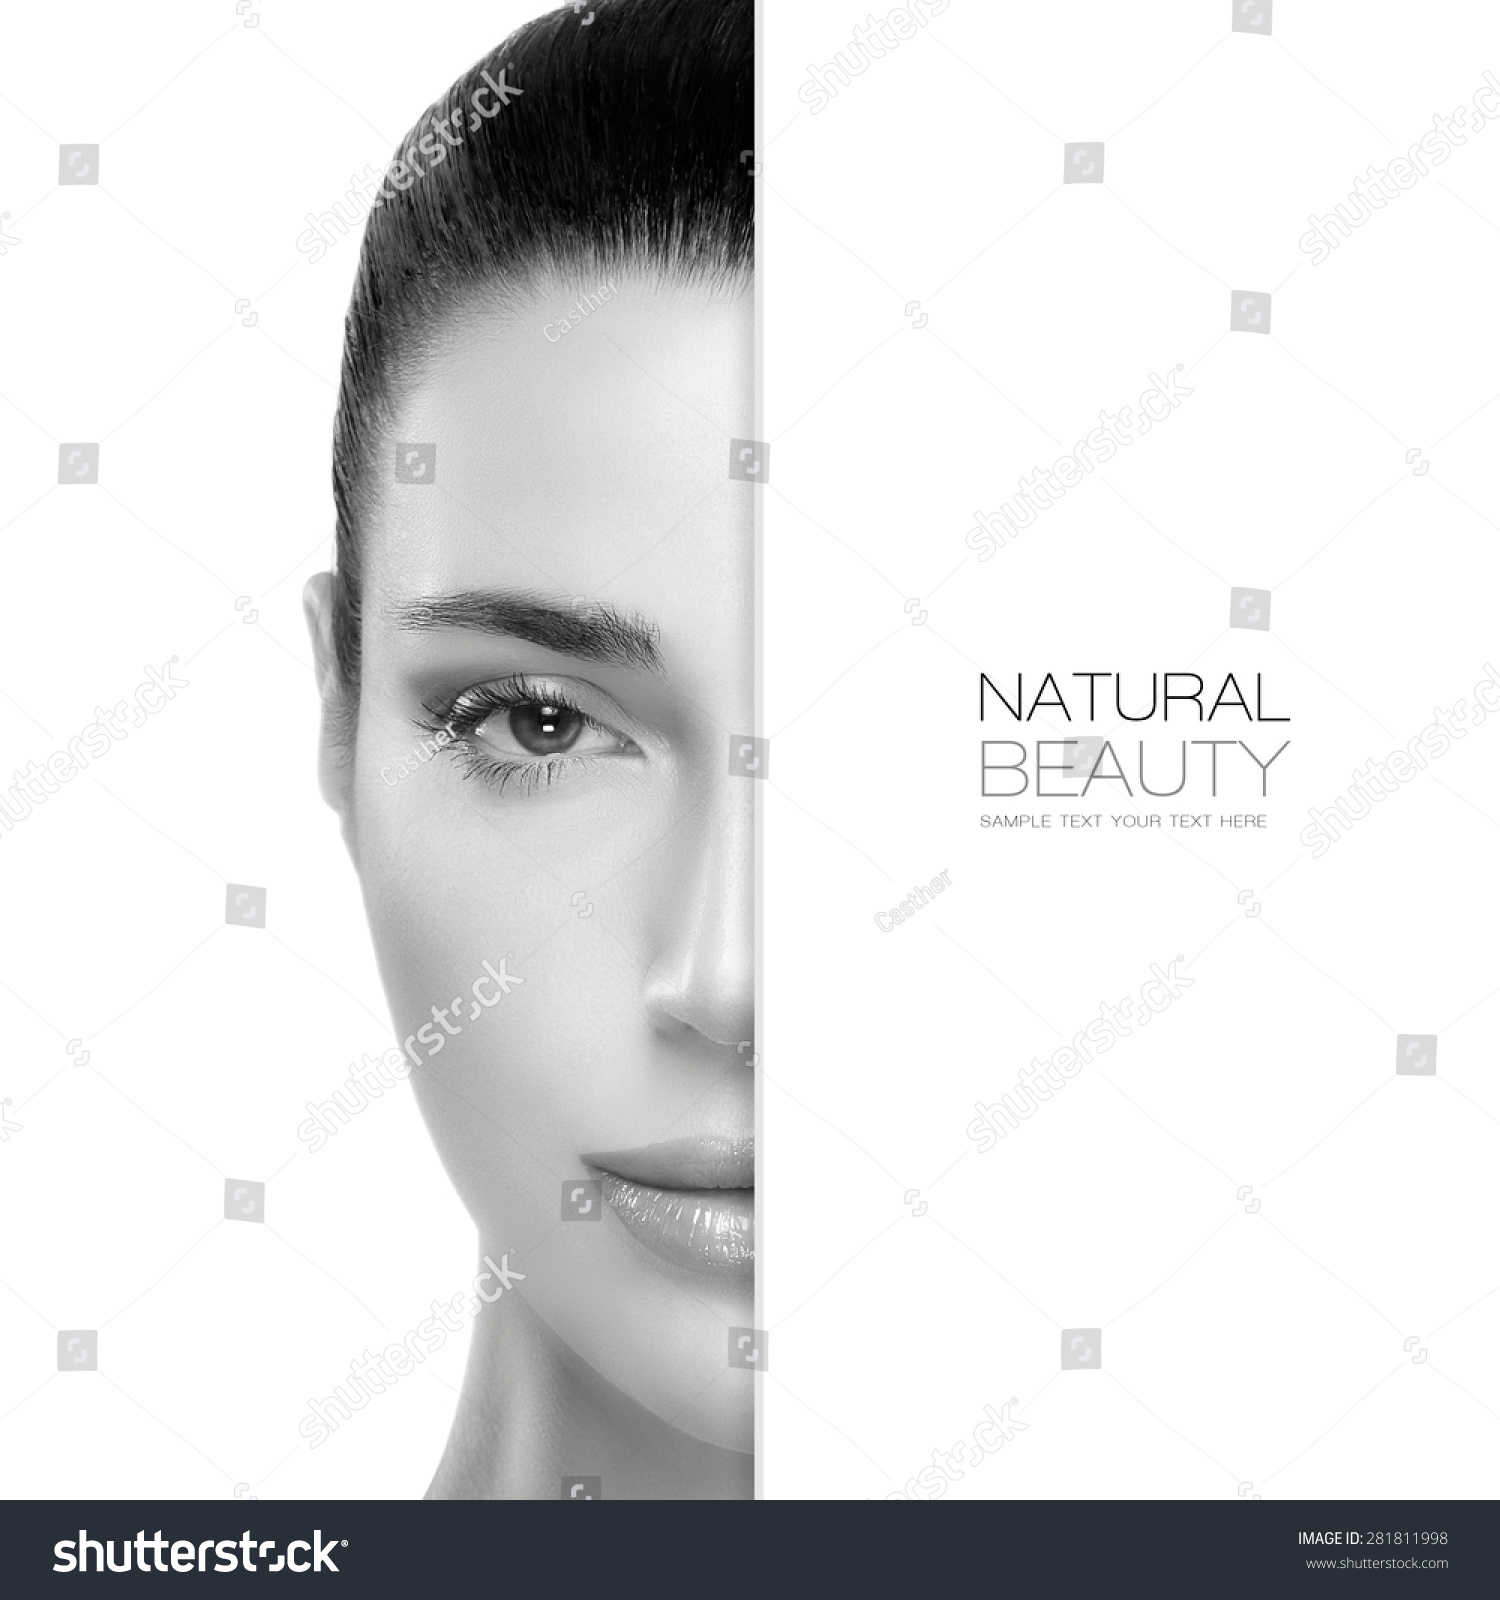 Natural Beauty Skin Care Concept With A Half Face Portrait Of A Gorgeous Woman With Healthy